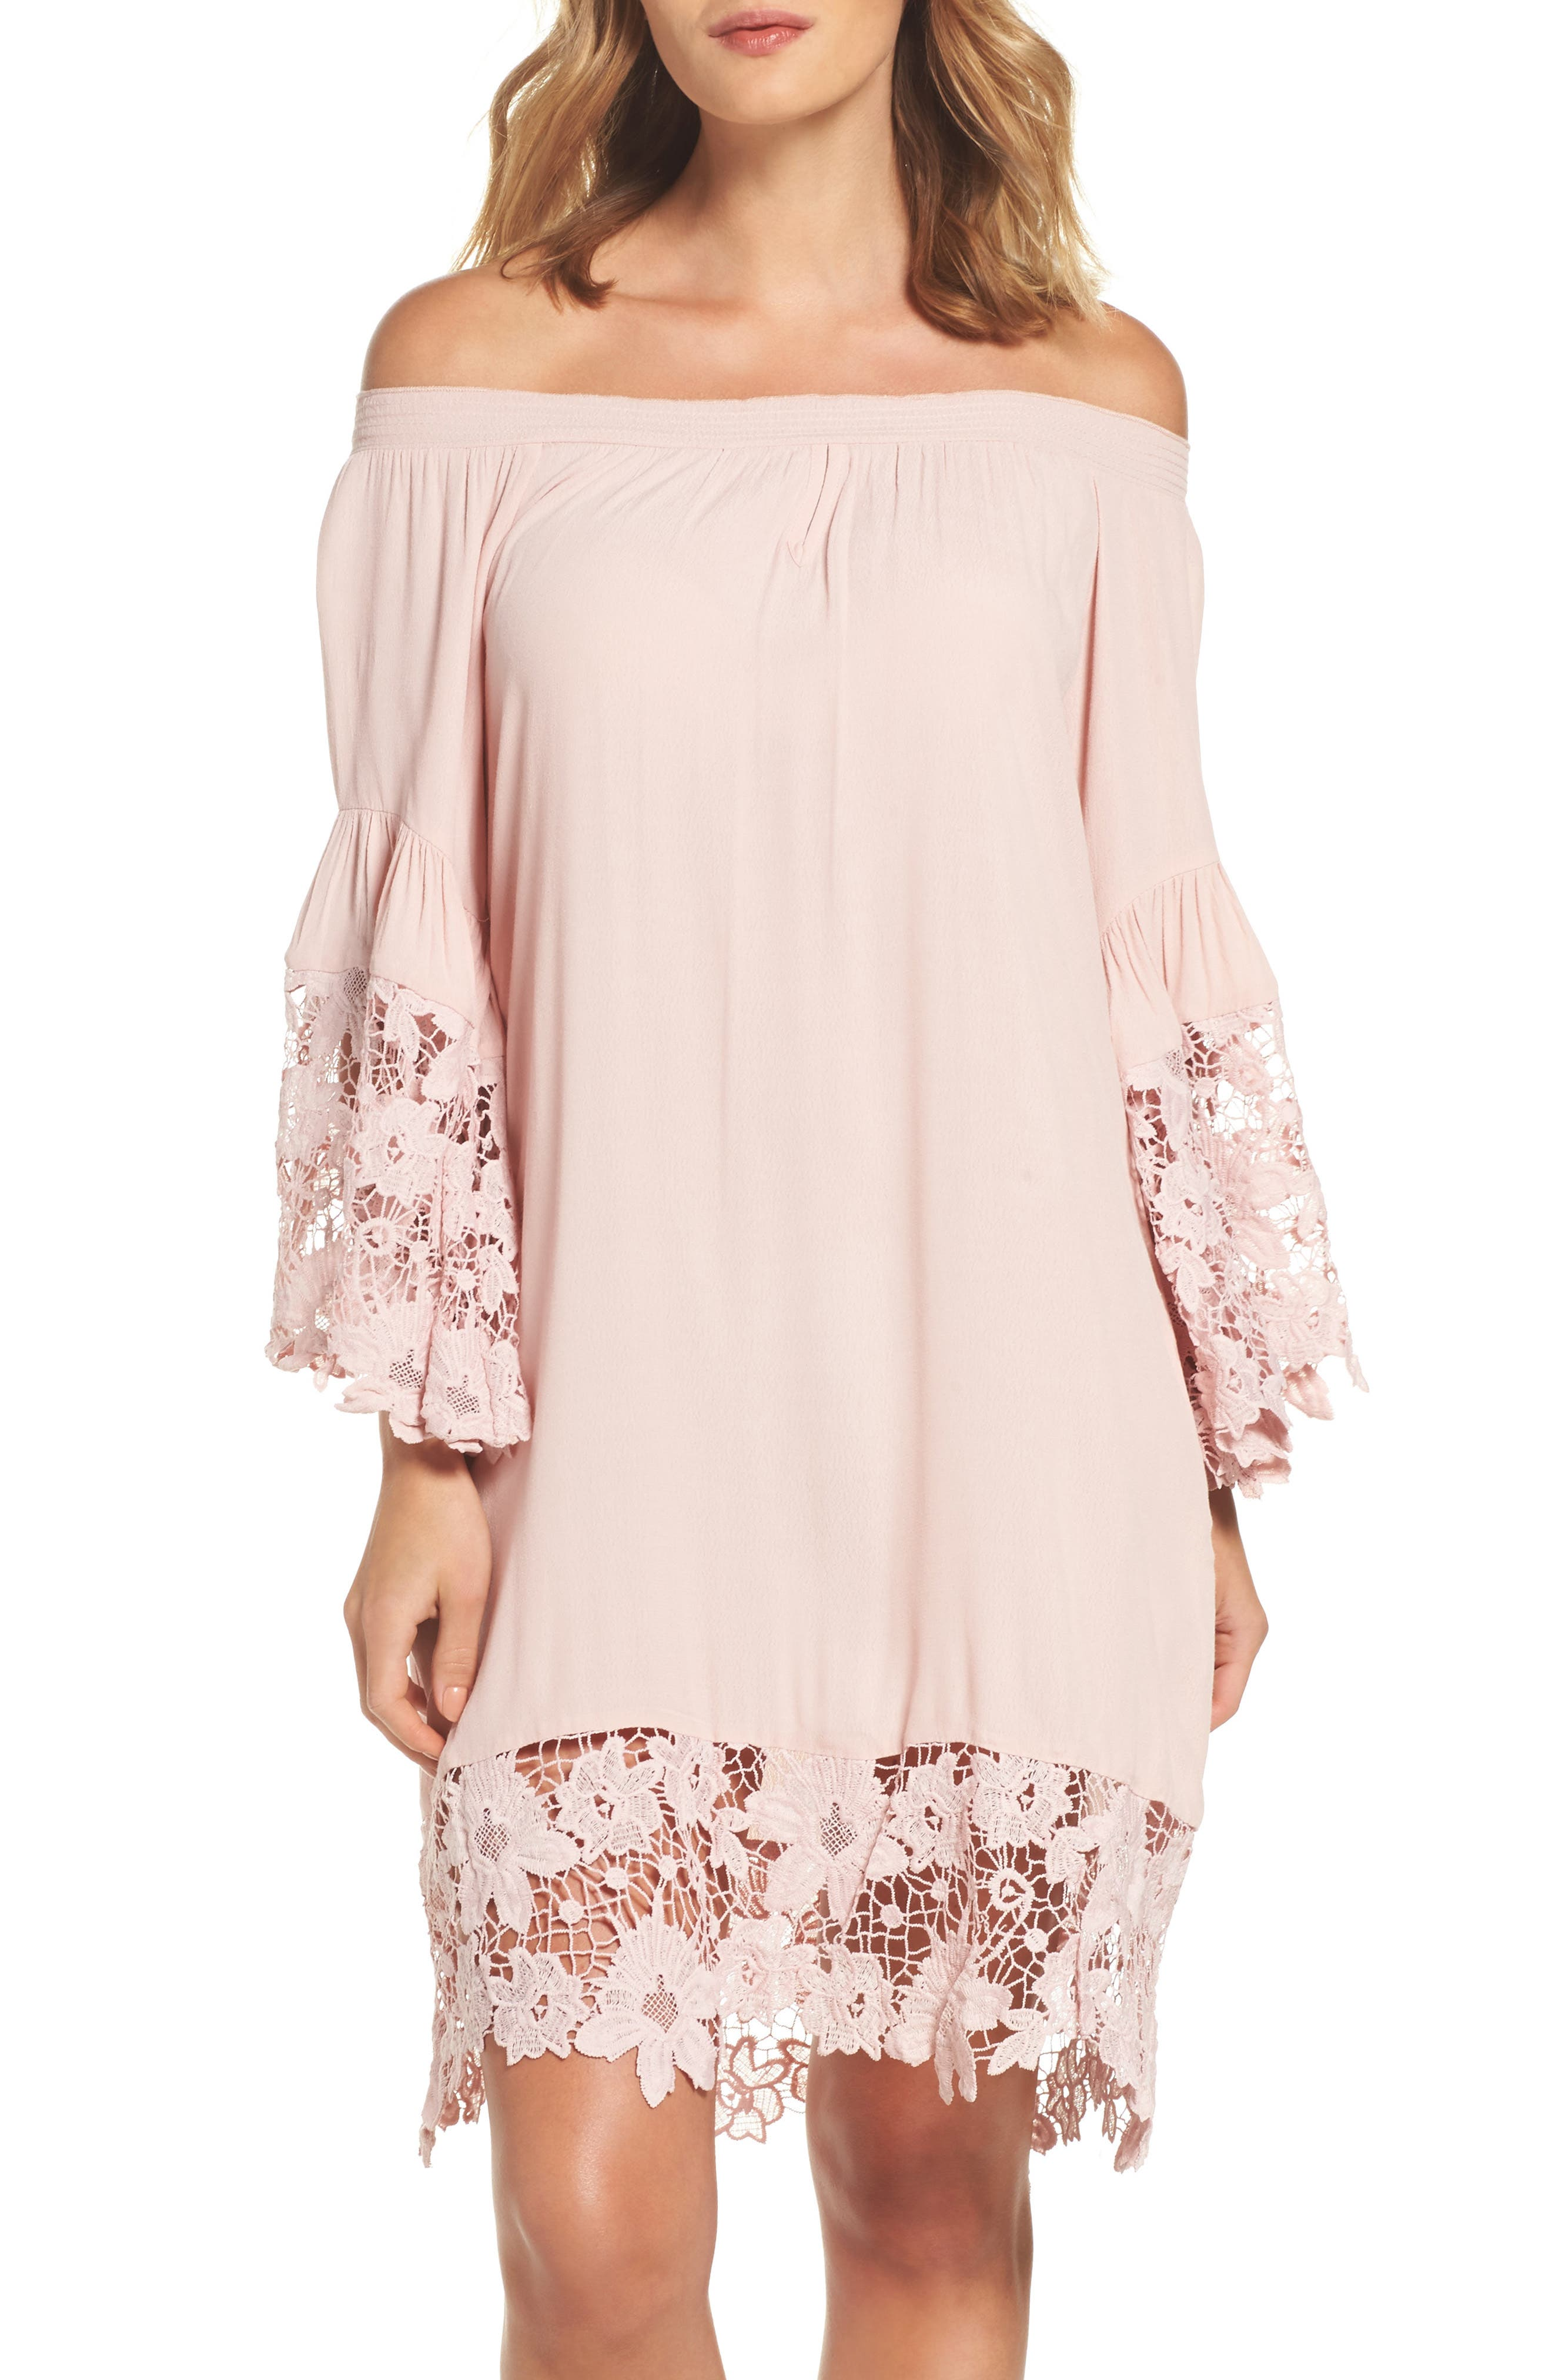 Alternate Image 1 Selected - Muche et Muchette Jolie Lace Accent Cover-Up Dress